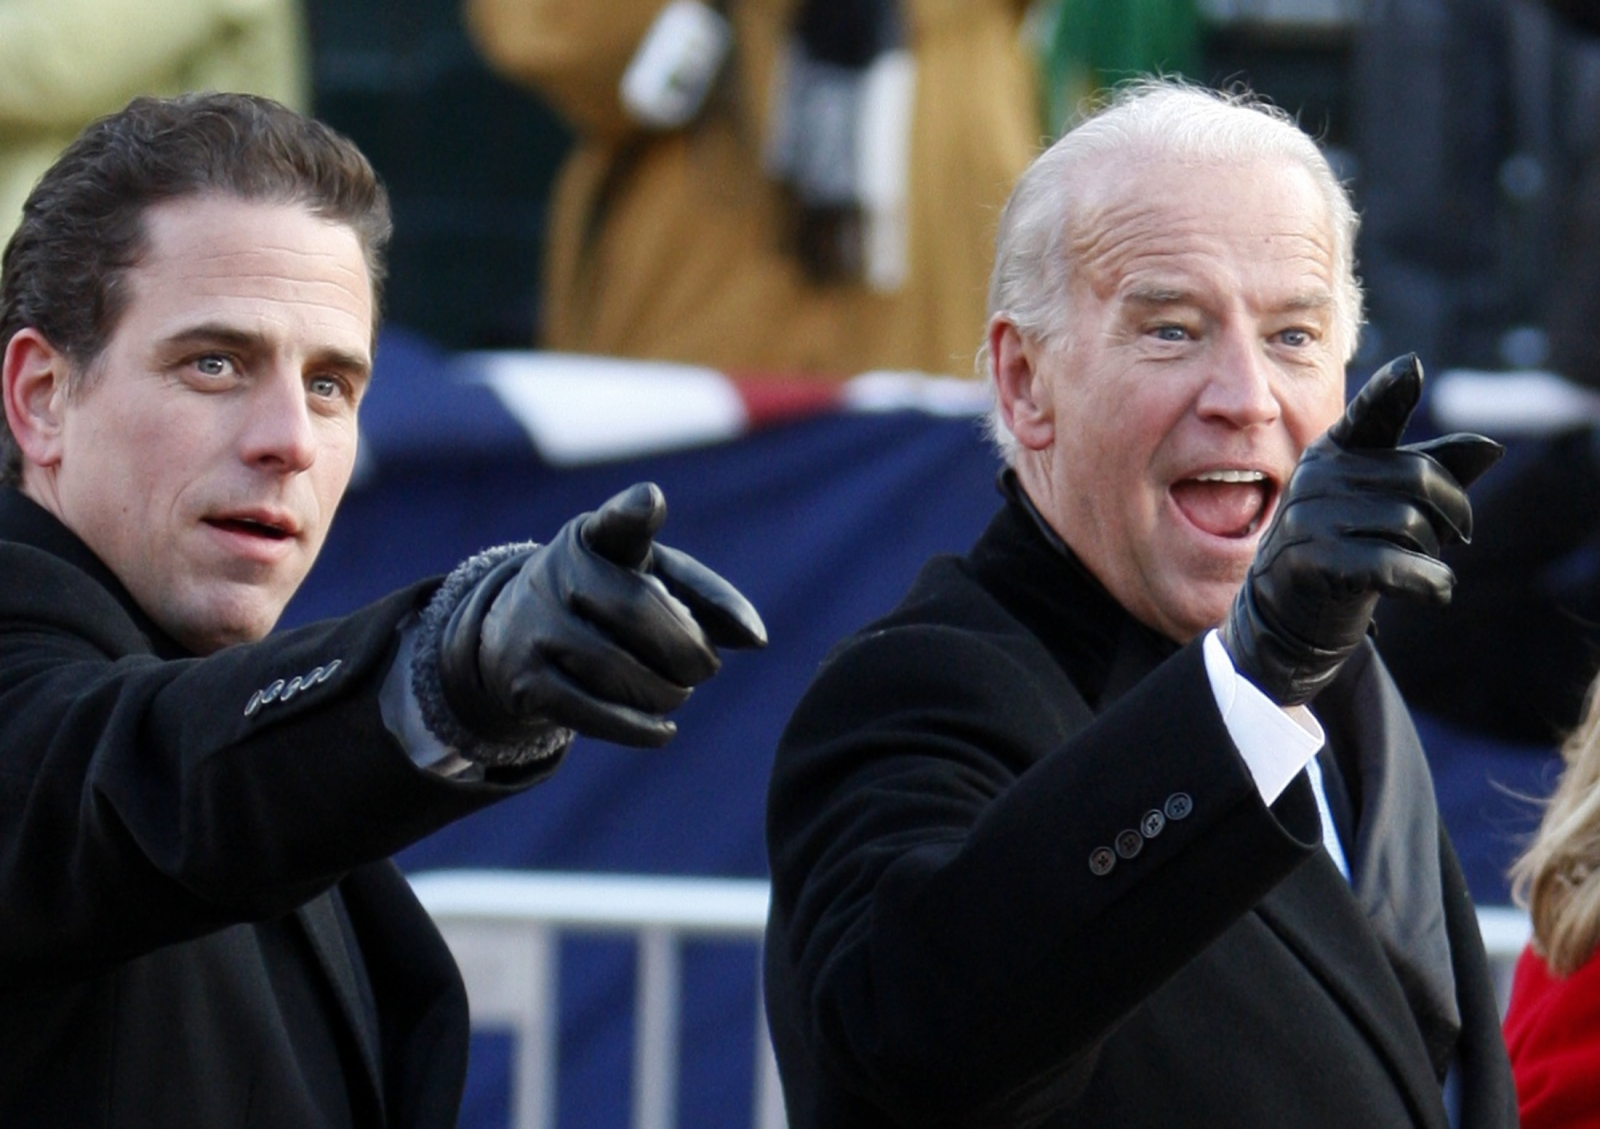 Joe Biden Hunter Biden Cocaine